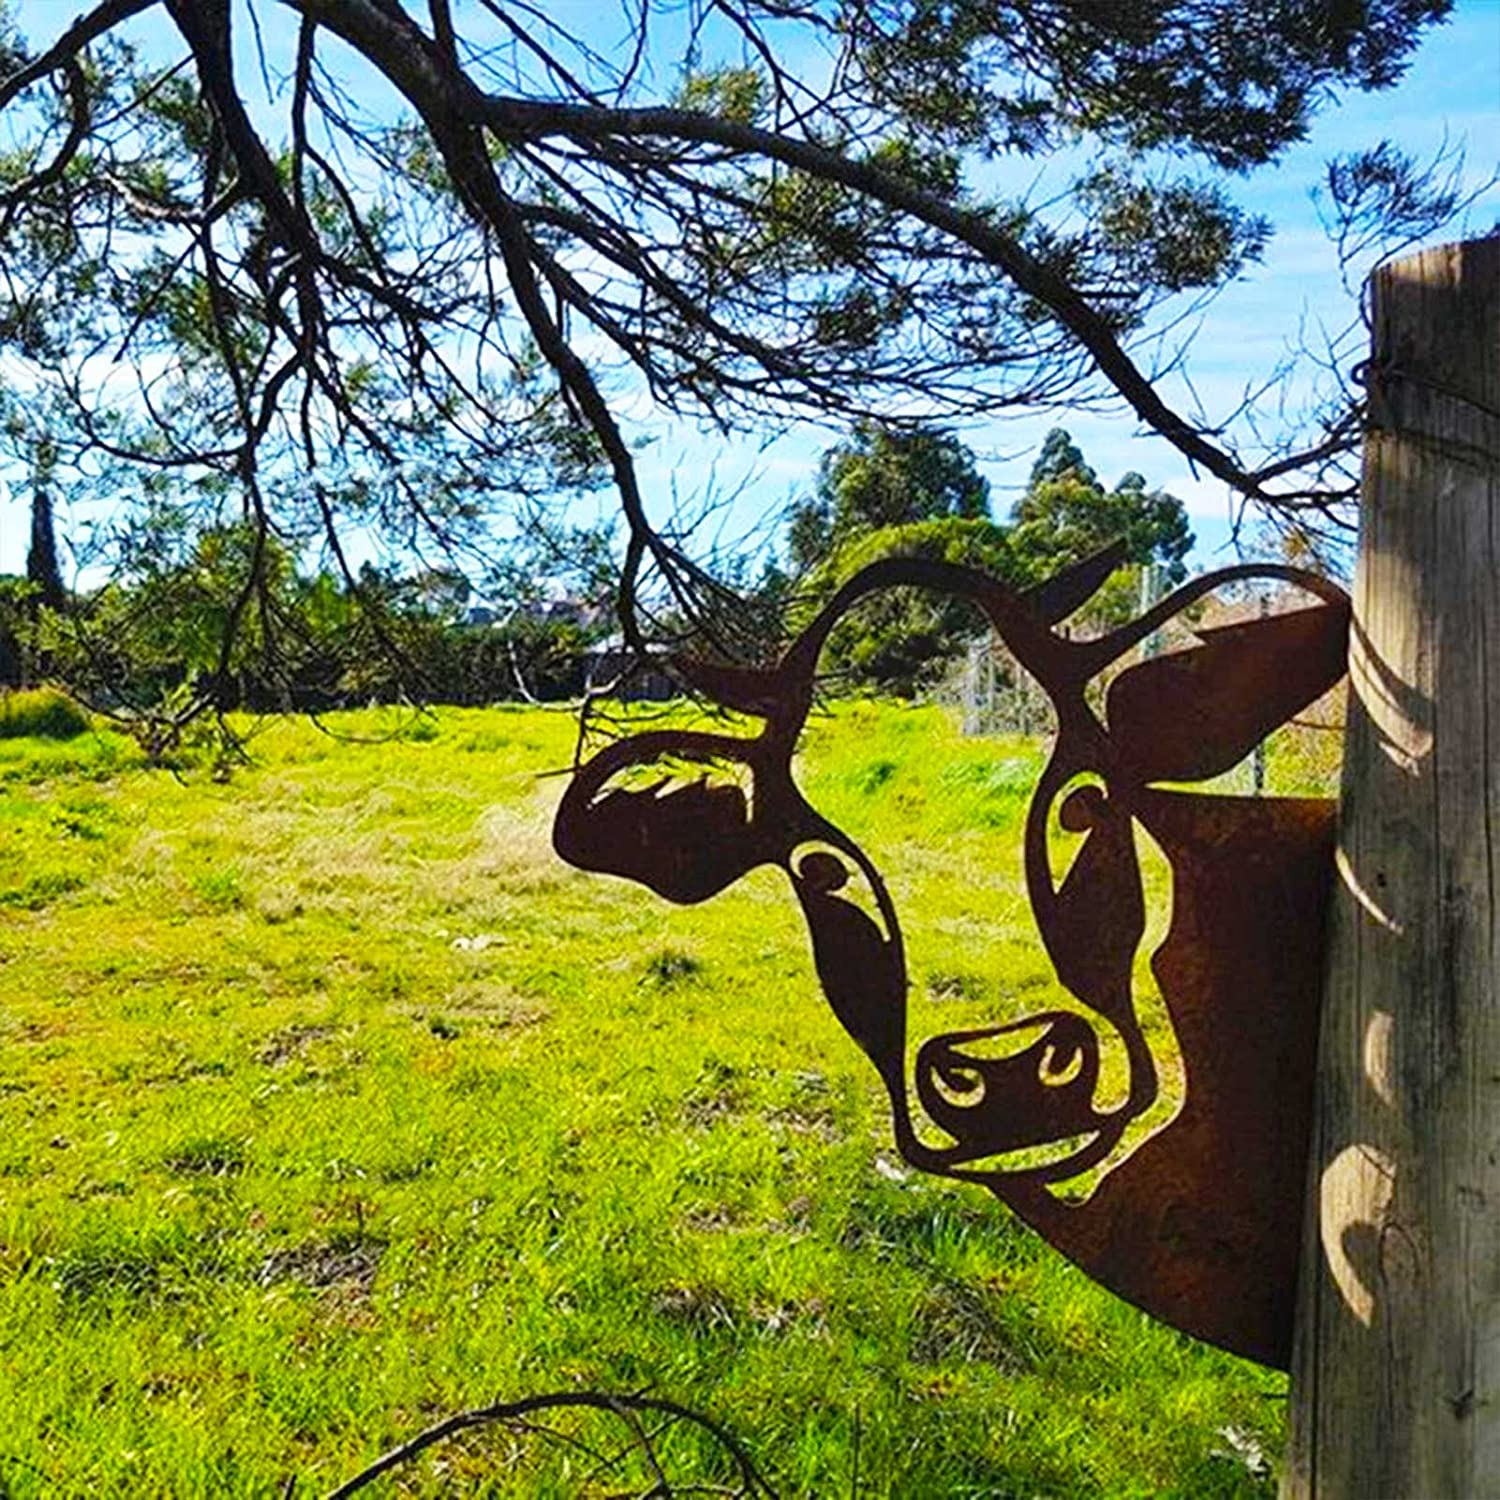 Peeping Cow Metal Art, 3D Farm Peeping Cattle Metal Art Outdoor Garden Statue, Farm Peeping Cow Art Ornament Craftwork for Patio Backyard Lawn Garden Decor for Outside, Indoor Outdoor Figurine